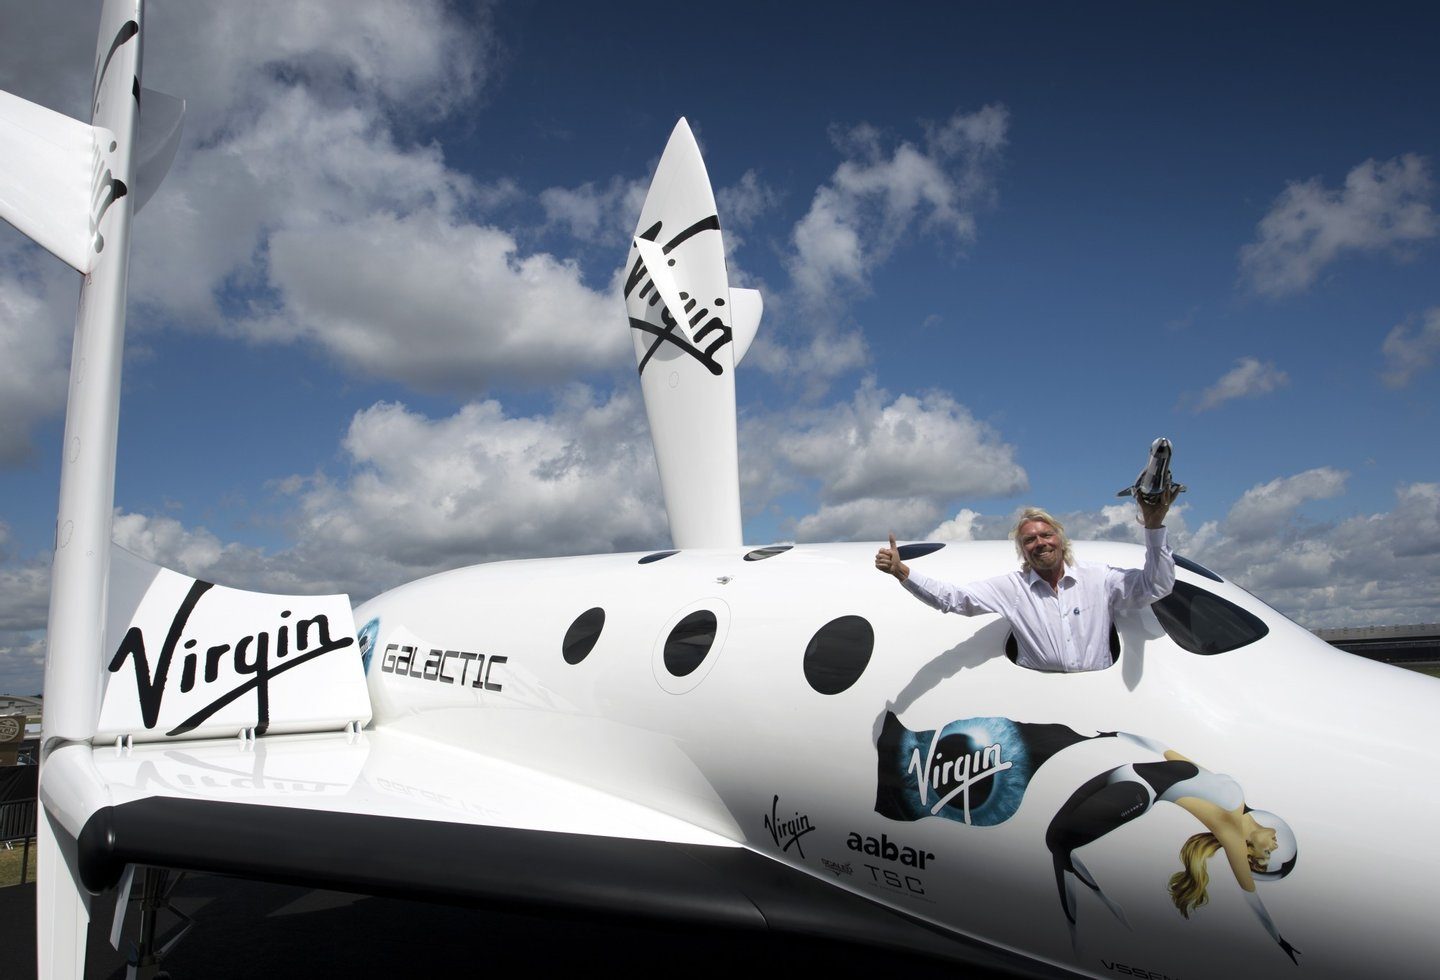 British billionaire Richard Branson poses for photographs in the window of a replica of the Virgin Galactic, the world?s first commercial spaceline, at the Farnborough International Airshow in Hampshire, southern England, on July 11, 2012. Virgin Galactic announced ?LauncherOne,? a new air-launched rocket specifically designed to deliver small satellites into orbit. Commercial flights of the new orbital launch vehicle are expected to begin by 2016, Virgin Galactic aims to offer frequent and dedicated launches at the world?s lowest prices. AFP PHOTO / ADRIAN DENNIS        (Photo credit should read ADRIAN DENNIS/AFP/GettyImages)